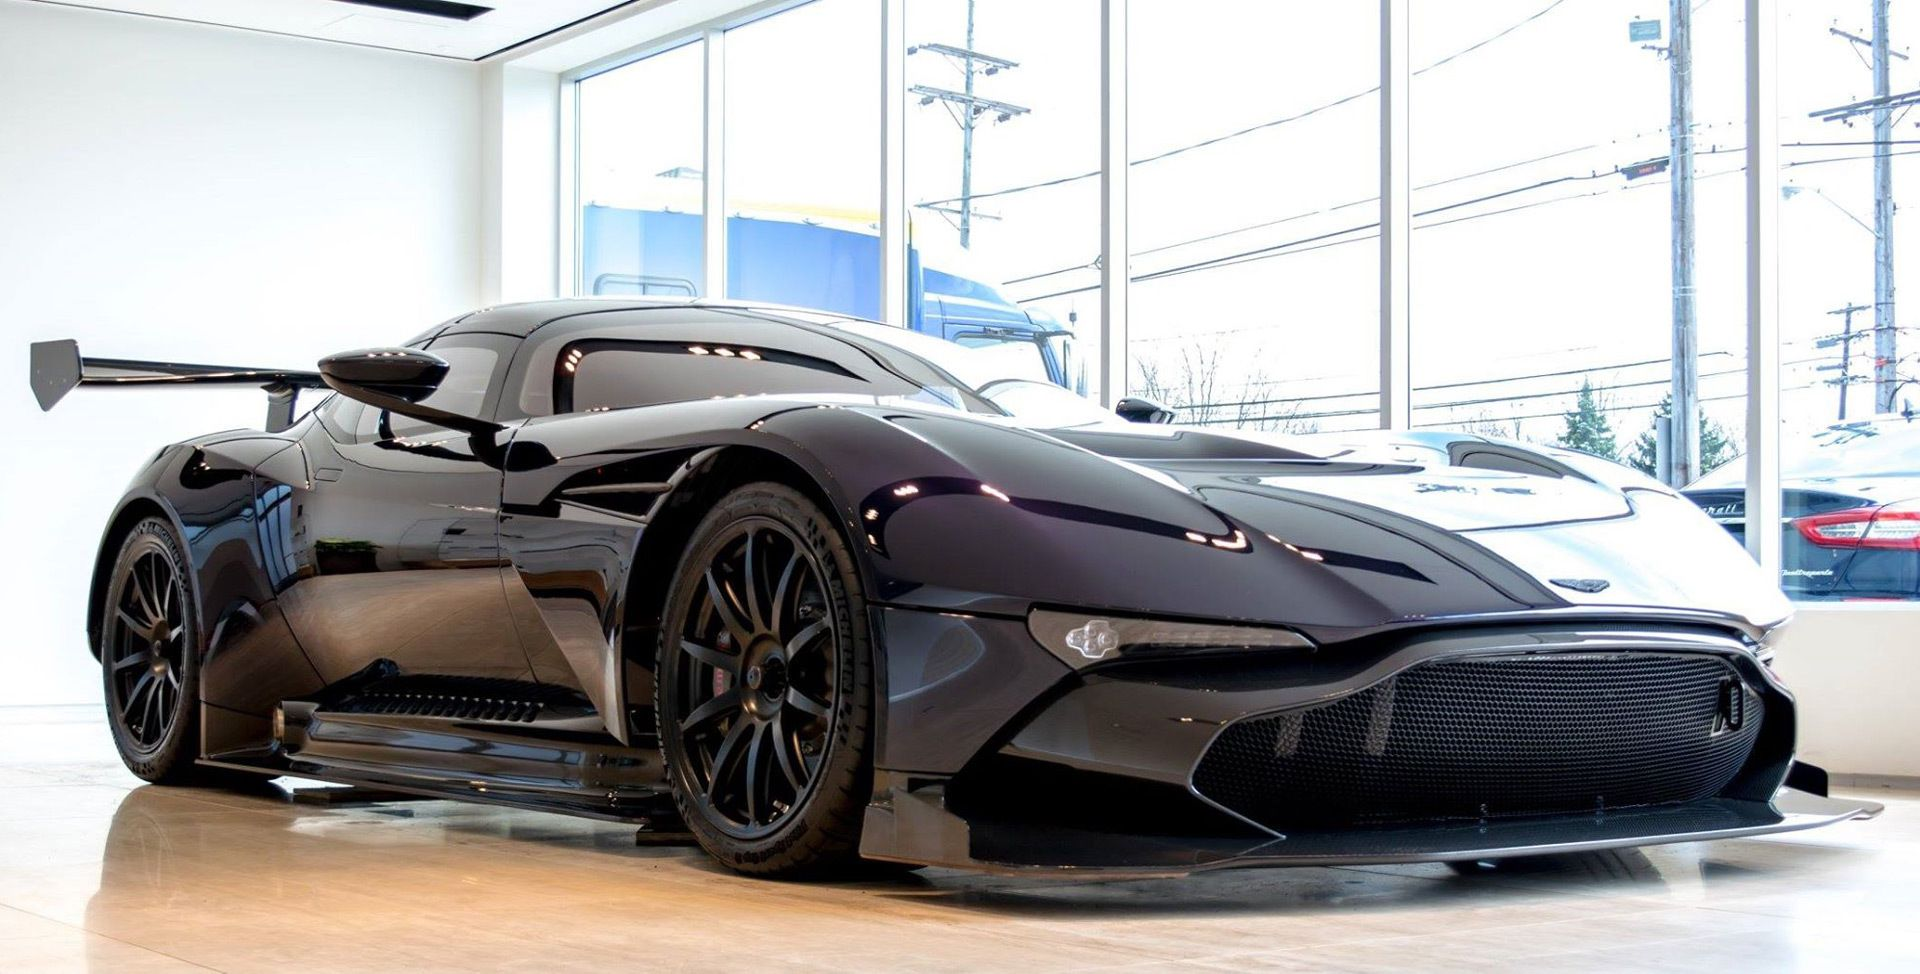 The Mighty 7 0 Liter V12 From The Aston Martin Vulcan Hypercar Is One Which Is All About Business When It Comes To Aston Martin Vulcan Aston Martin Super Cars